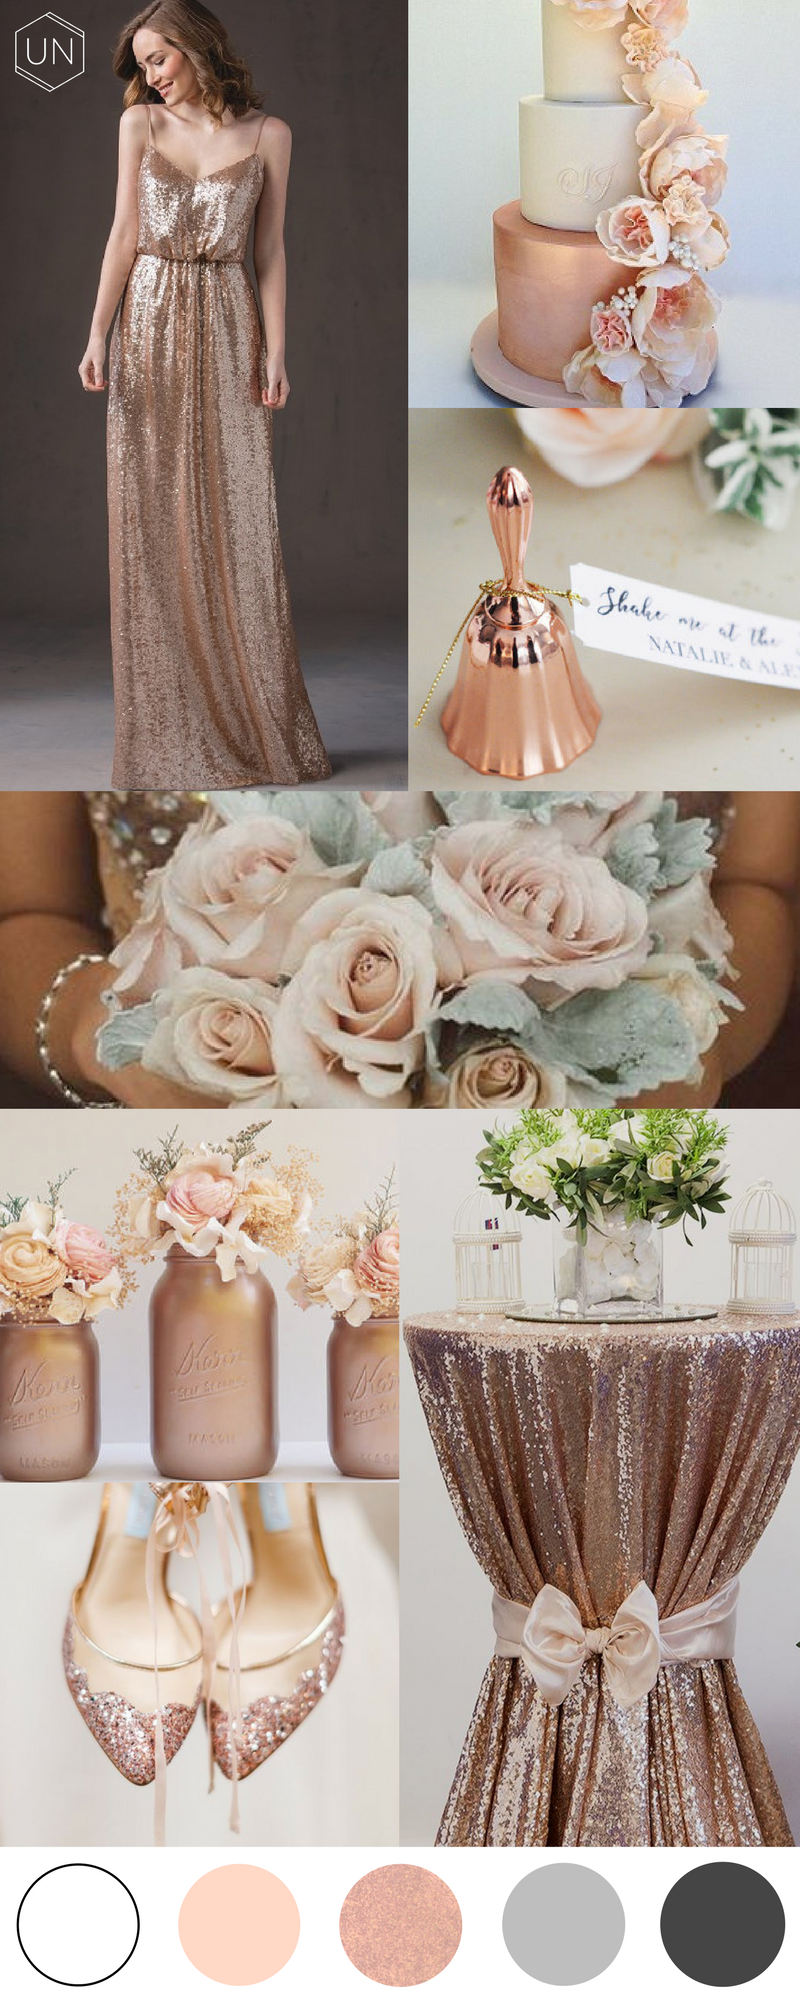 Unbridely - rose gold wedding inspiration